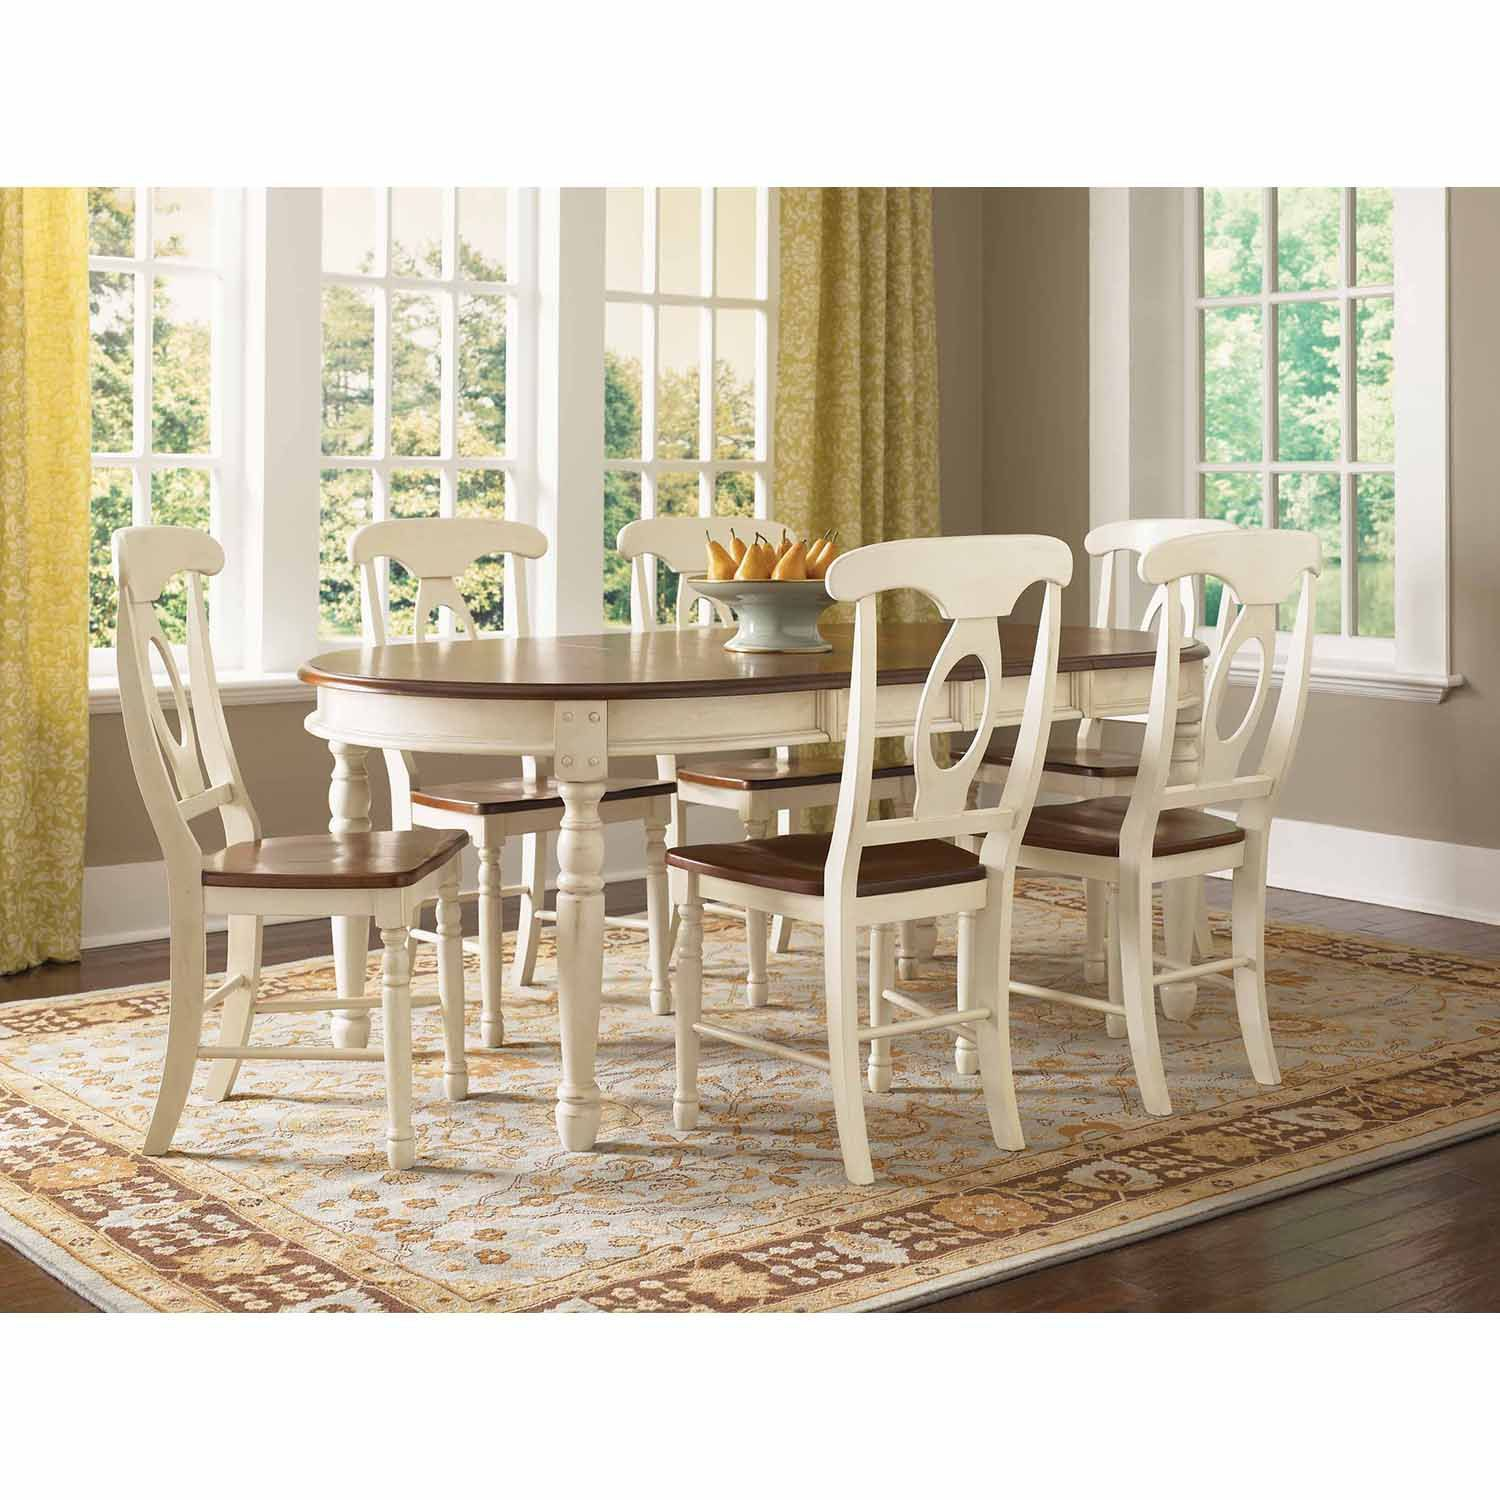 Mia Solid Wood Dining Set Assorted Sizes Sam S Club Dining